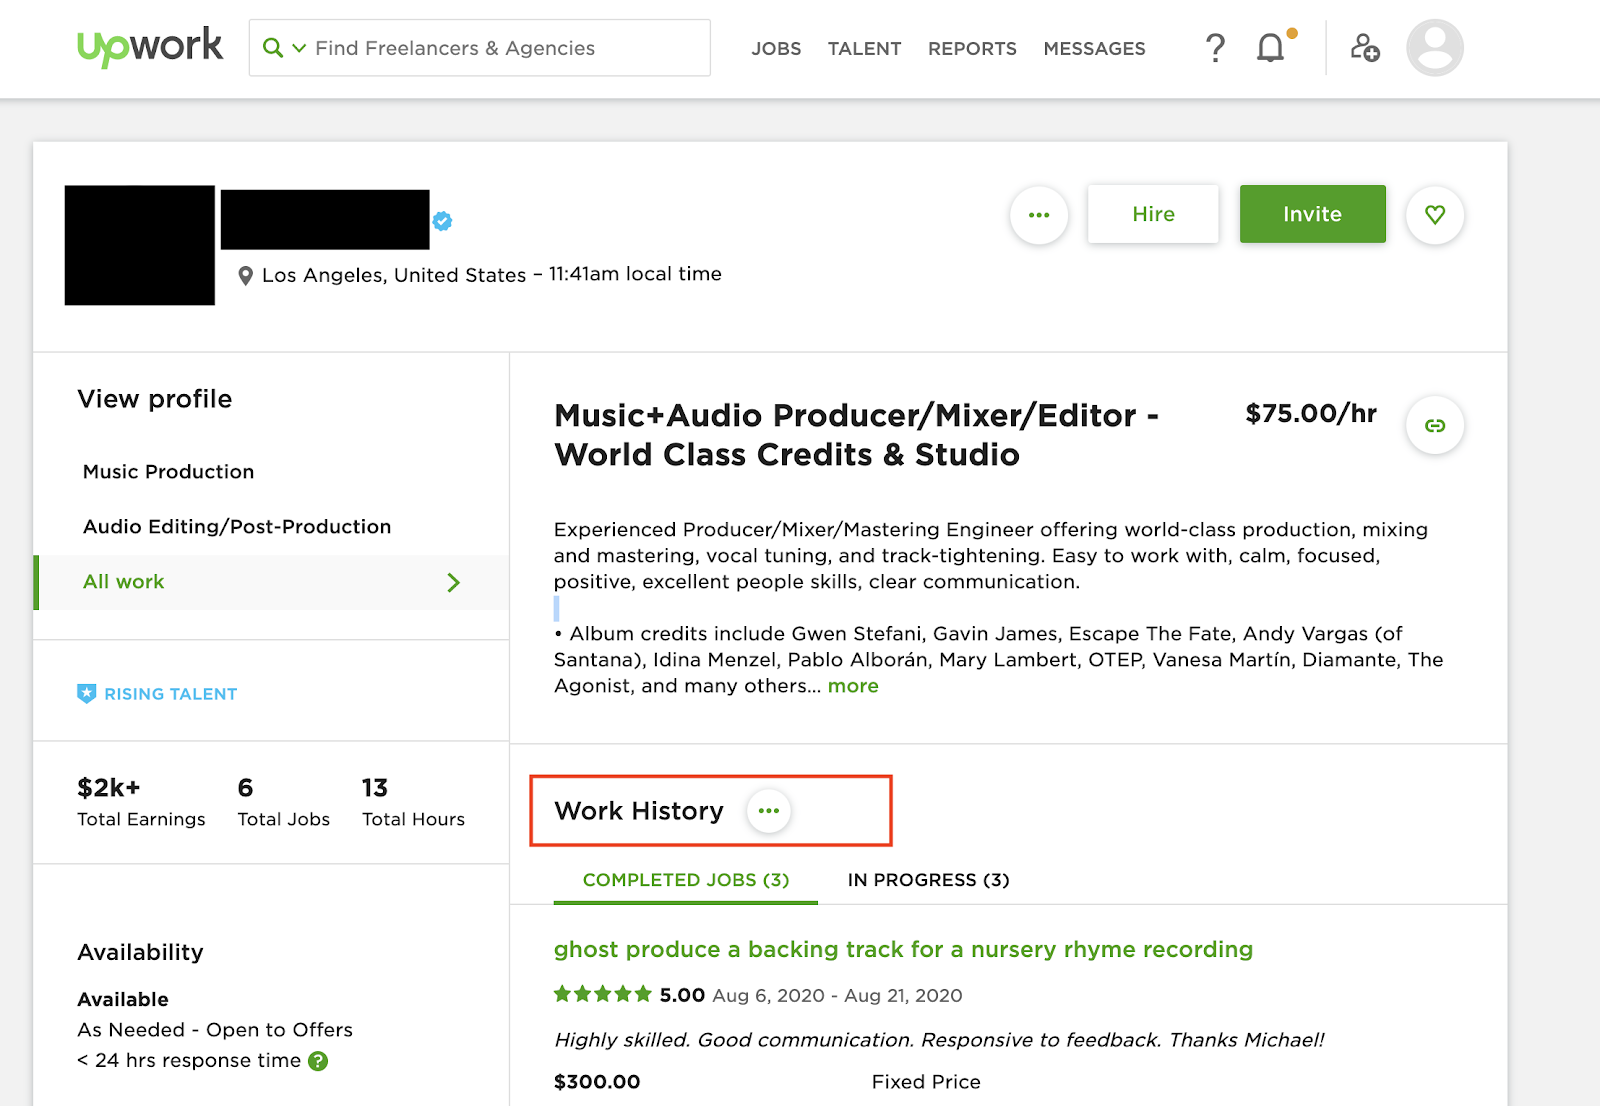 work history for an audiobook producer on UpWork